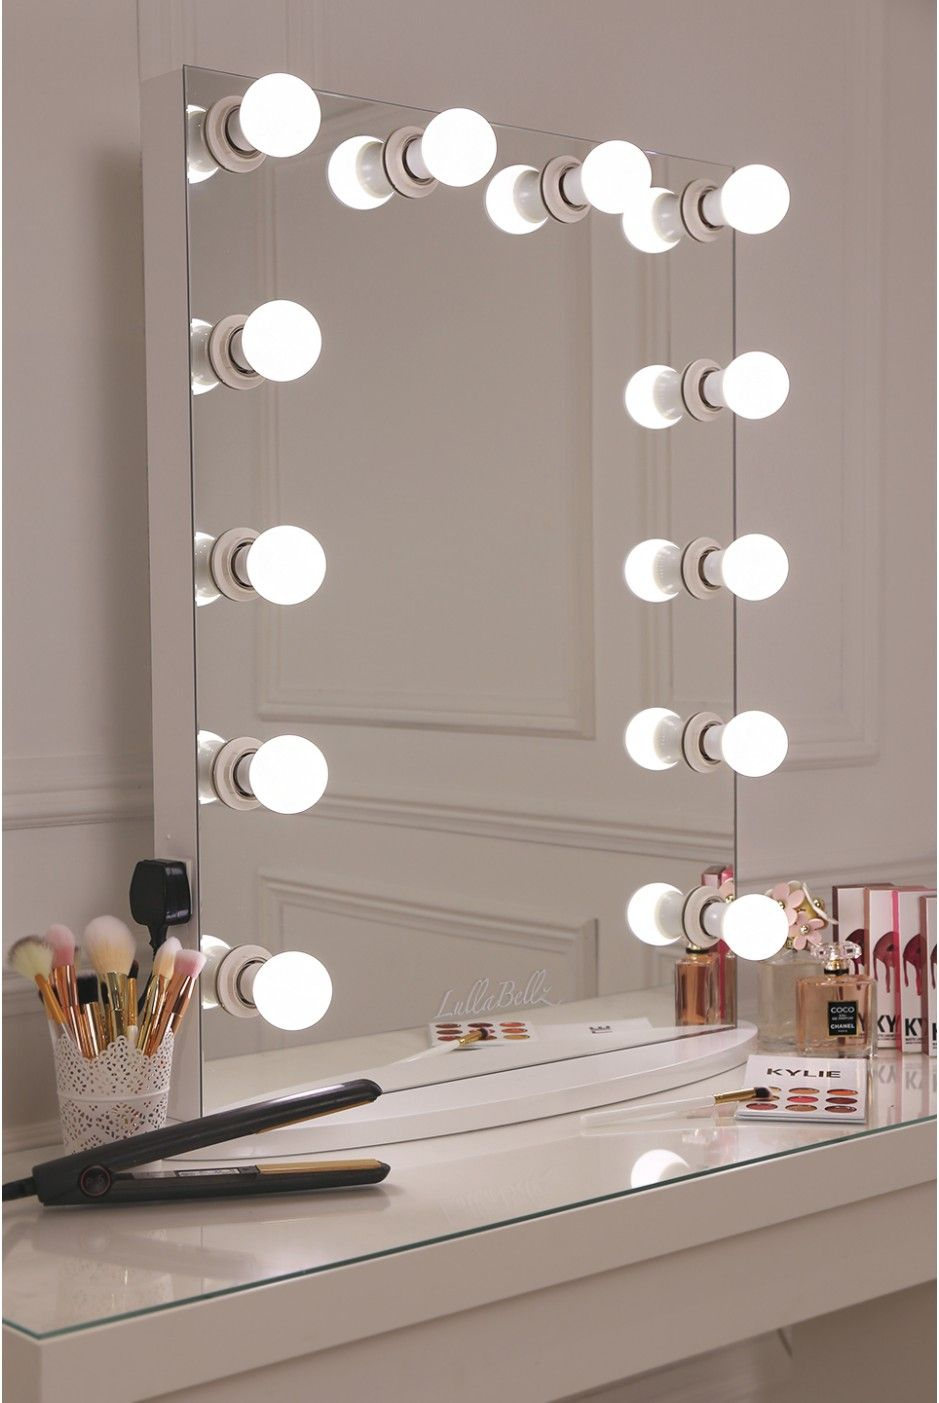 Vanity Girl Mirror With Lights : LULLABELLZ Hollywood Glow Vanity Mirror LED Bulbs. This is what make up dreams are made of girls ...